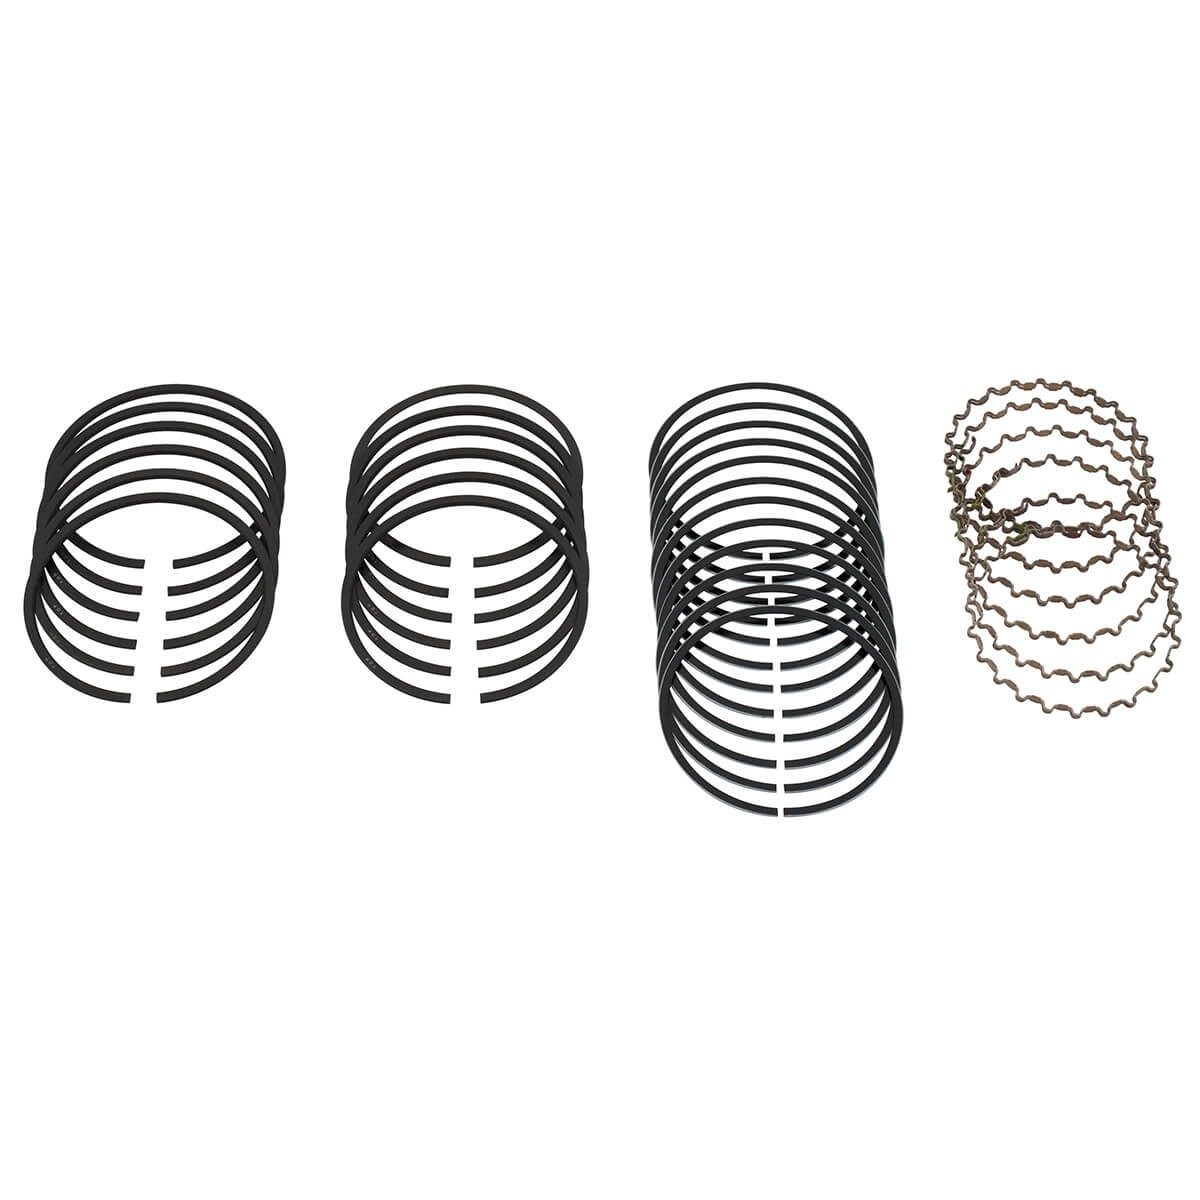 817 600 Ring Set Standard Hastings Brand